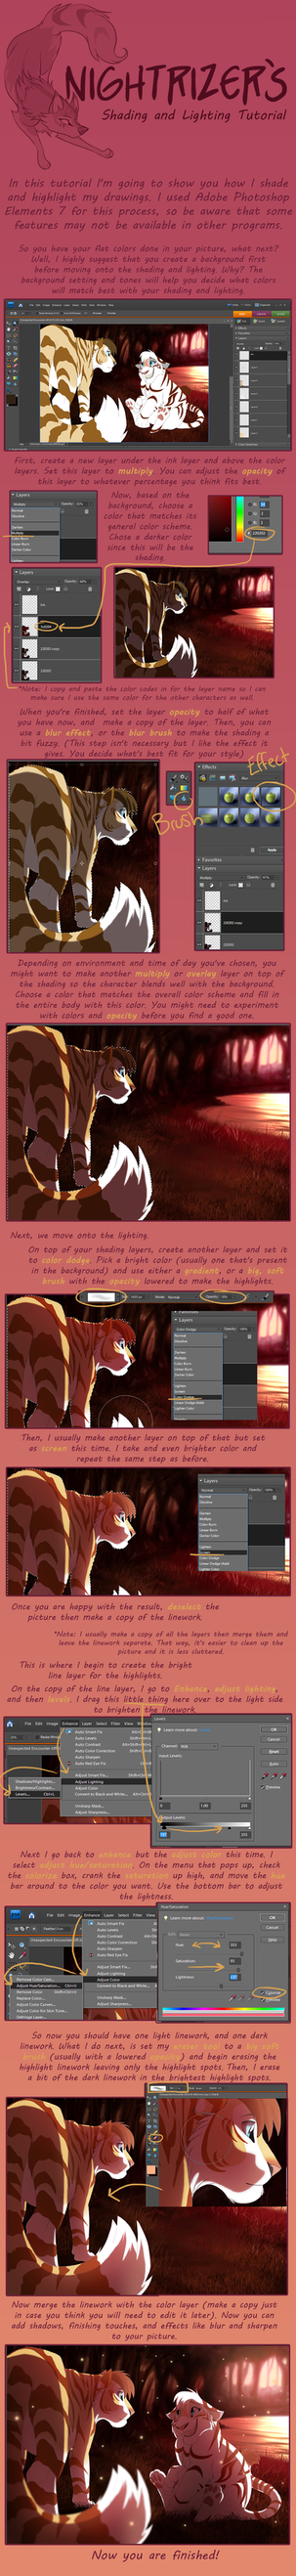 Shading and Lighting Tutorial by Nightrizer